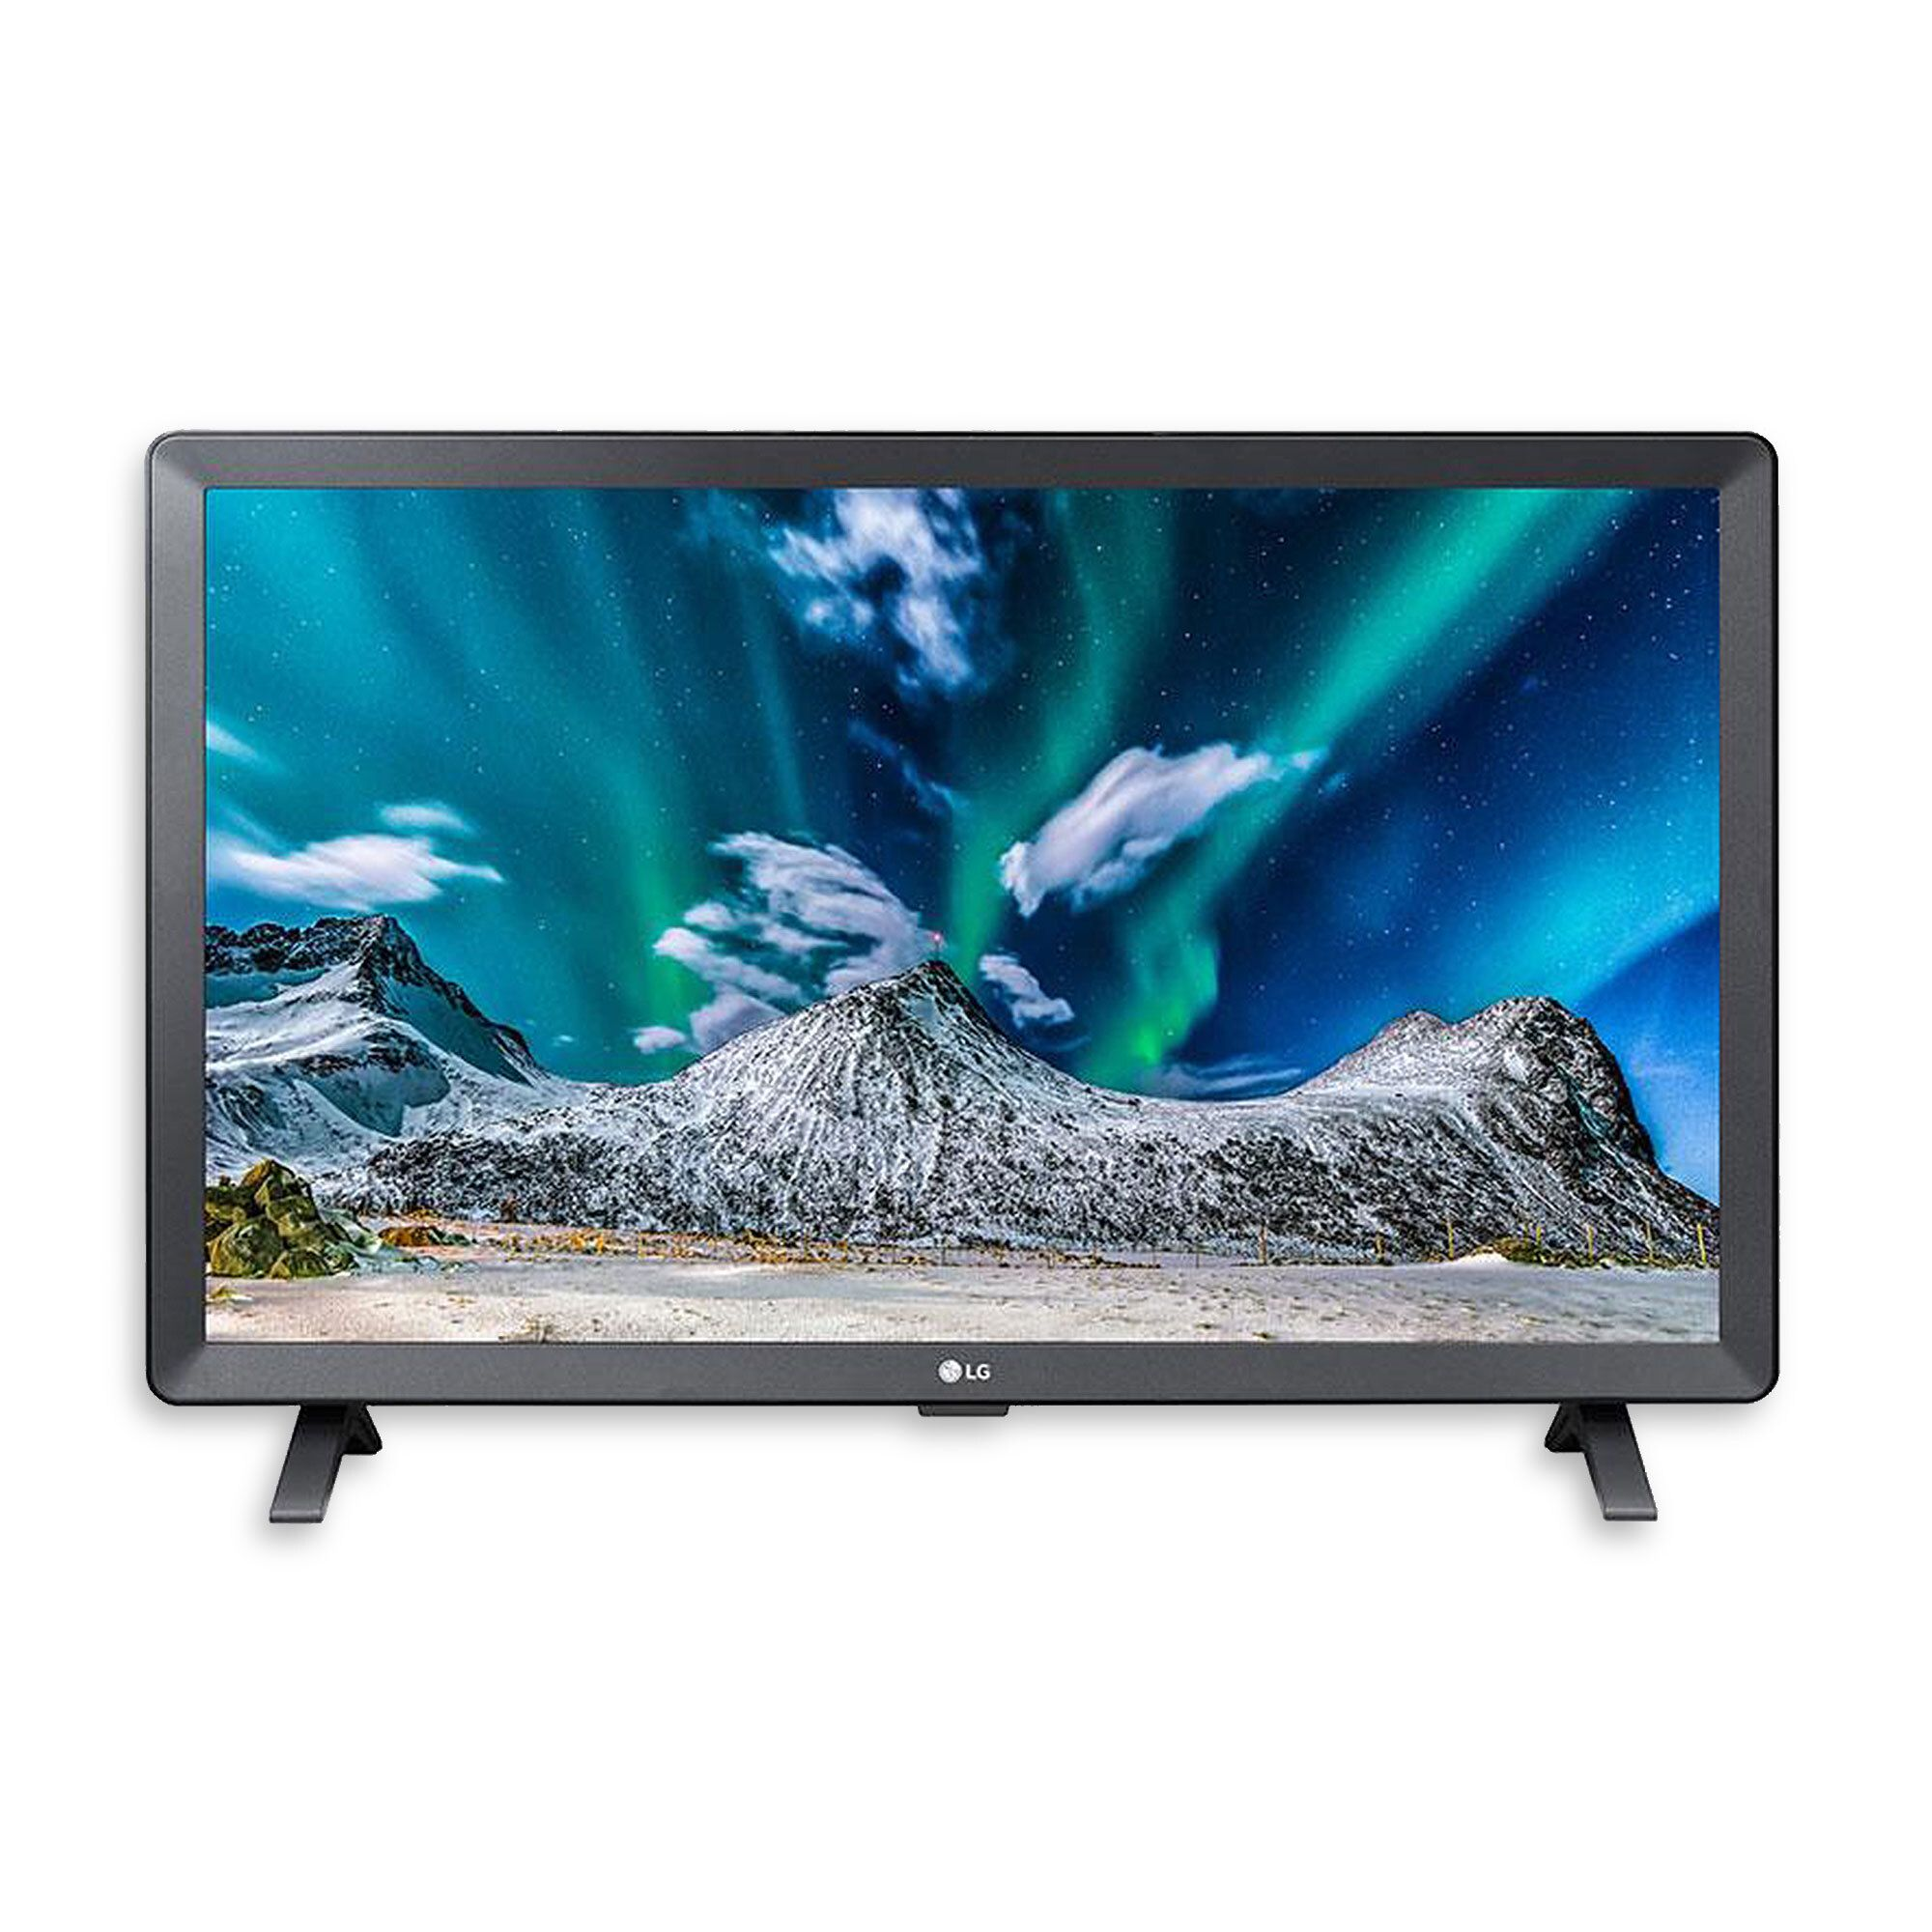 "Image of 28TL520V Monitor TV LED 28"""" HD Ready"